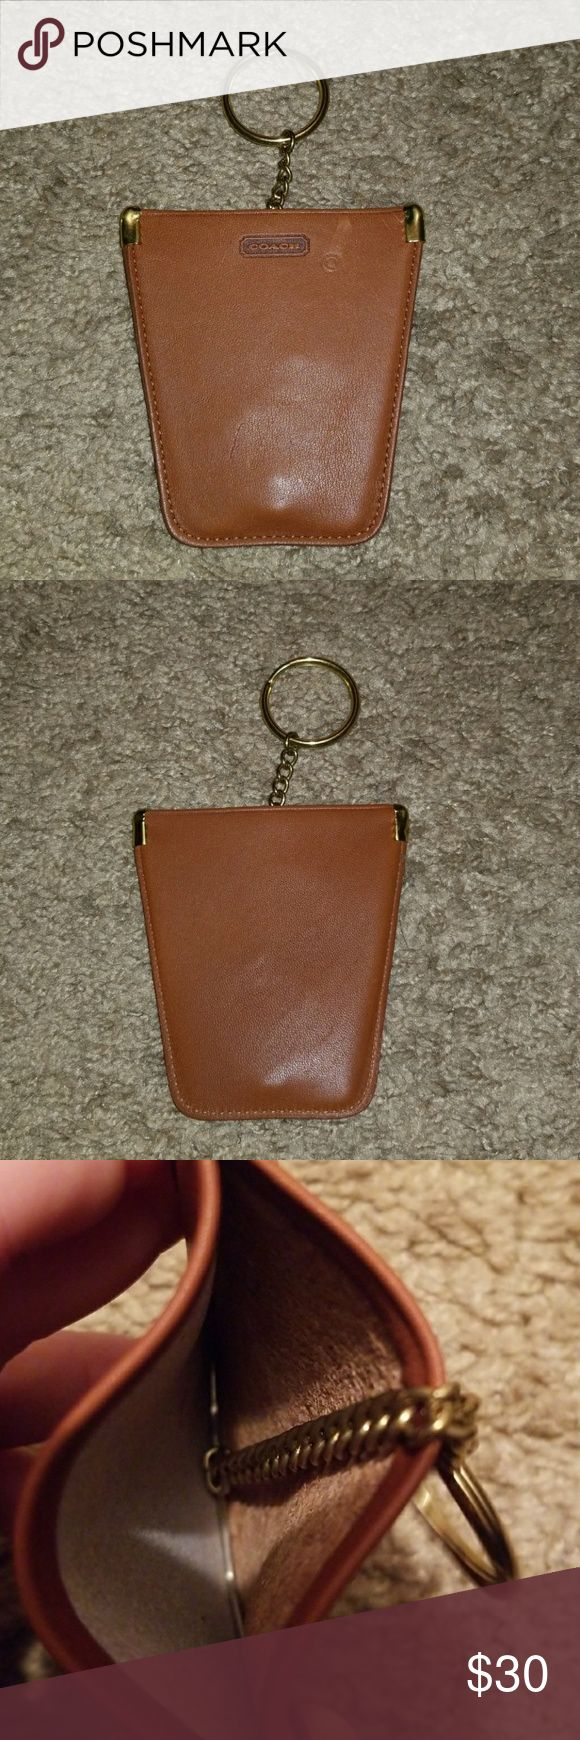 """Authentic Coach Brown Key Chain Item Unique key chain item. 3x4""""  there is 2 spots of wear if you call it that. This is still a cool item. Coach Accessories Key & Card Holders"""